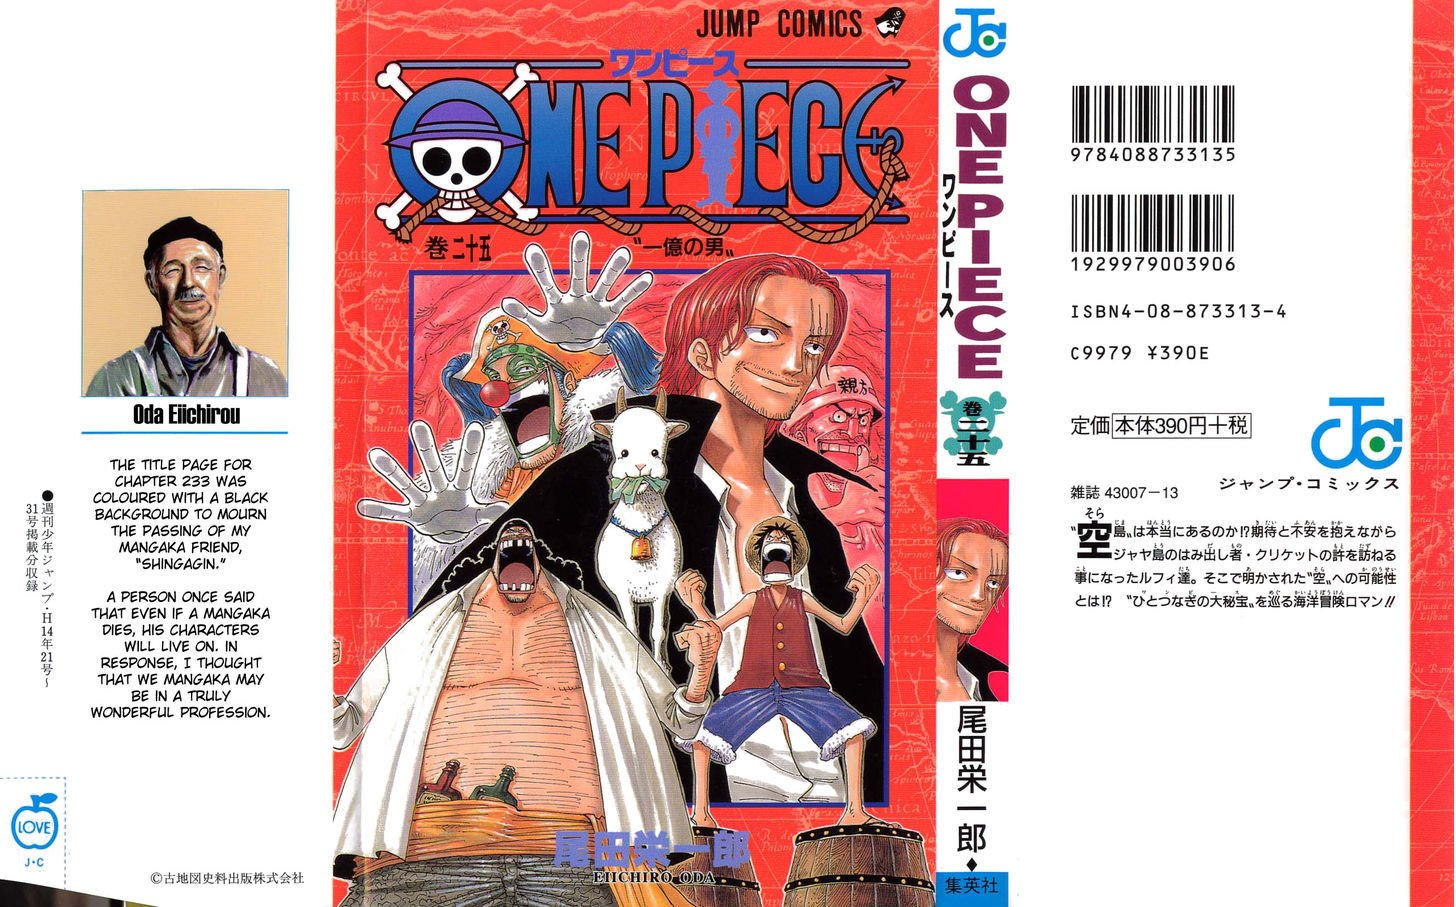 https://im.nineanime.com/comics/pic9/32/96/2575/OnePiece2270839.jpg Page 1